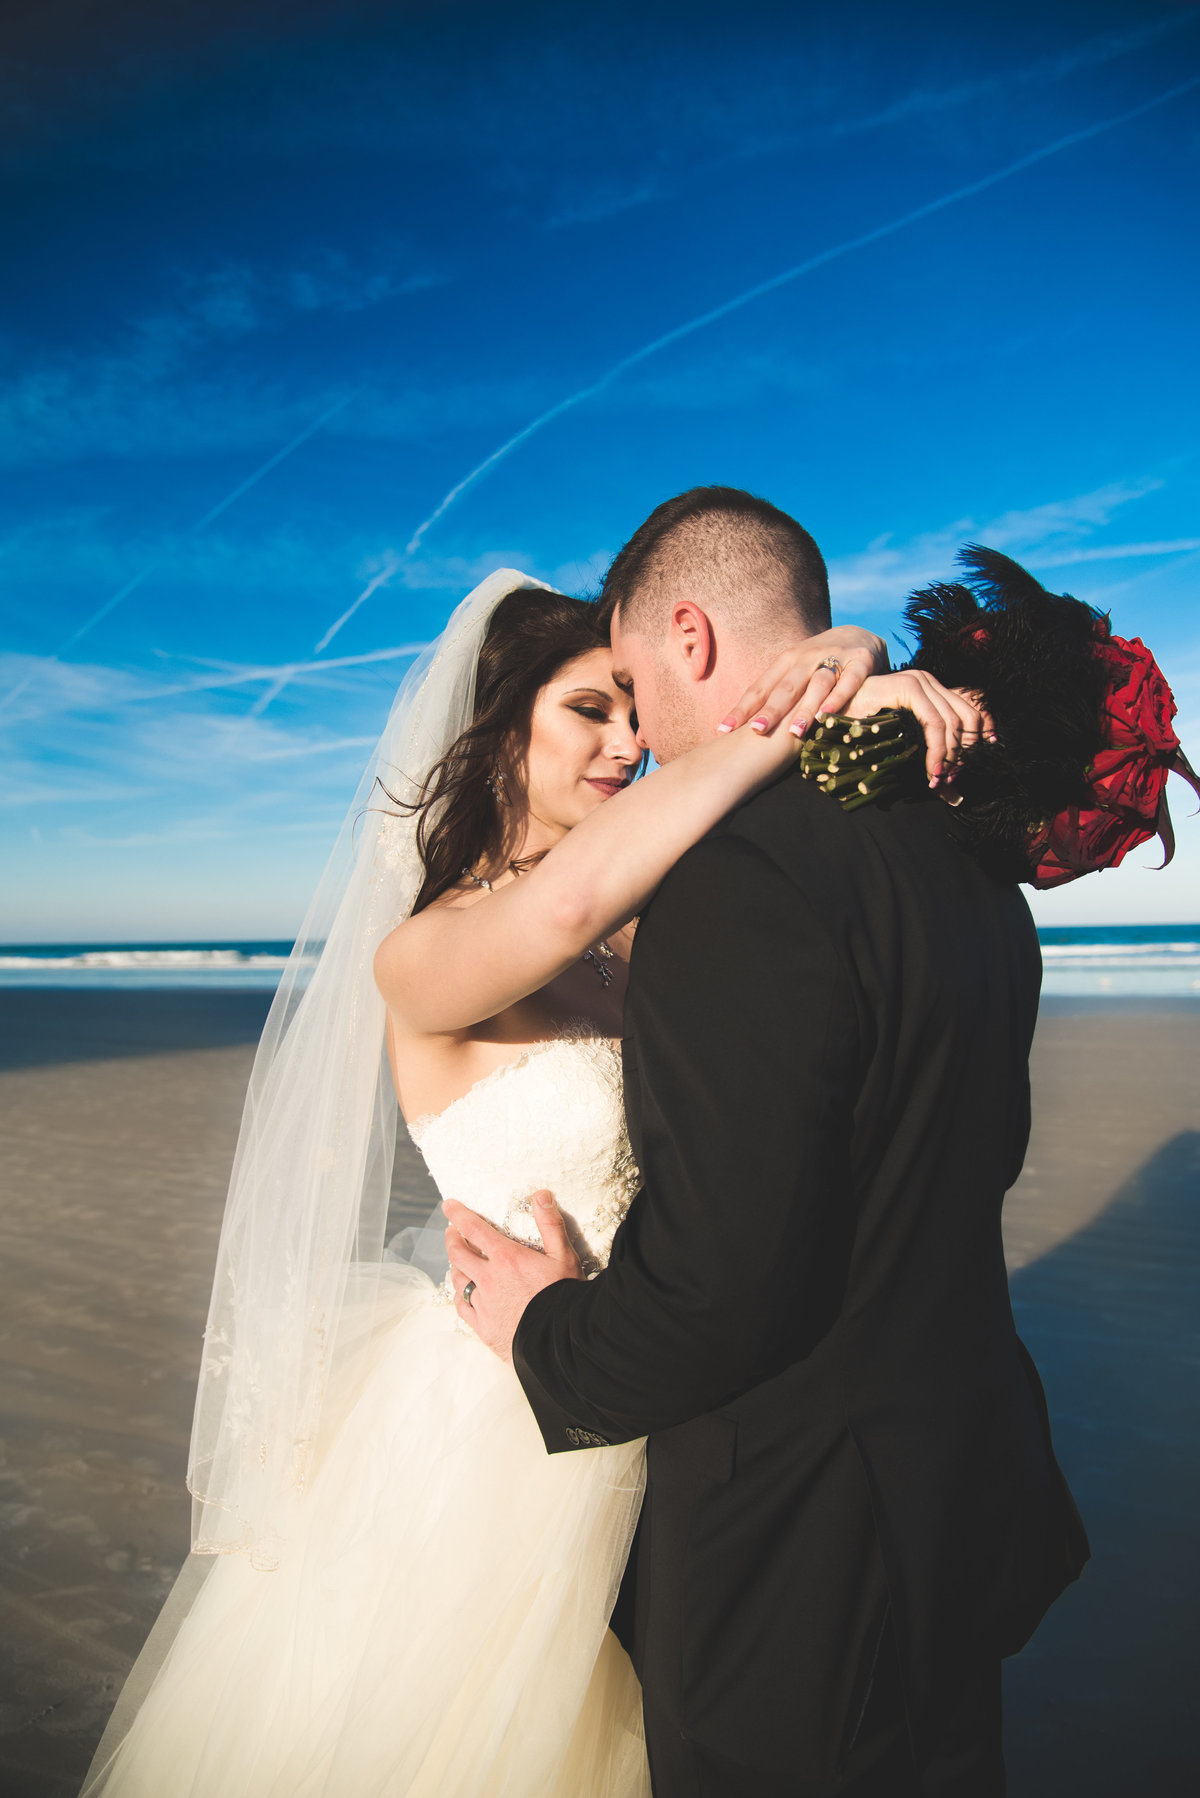 EllisWedding_FormalPortraits-55